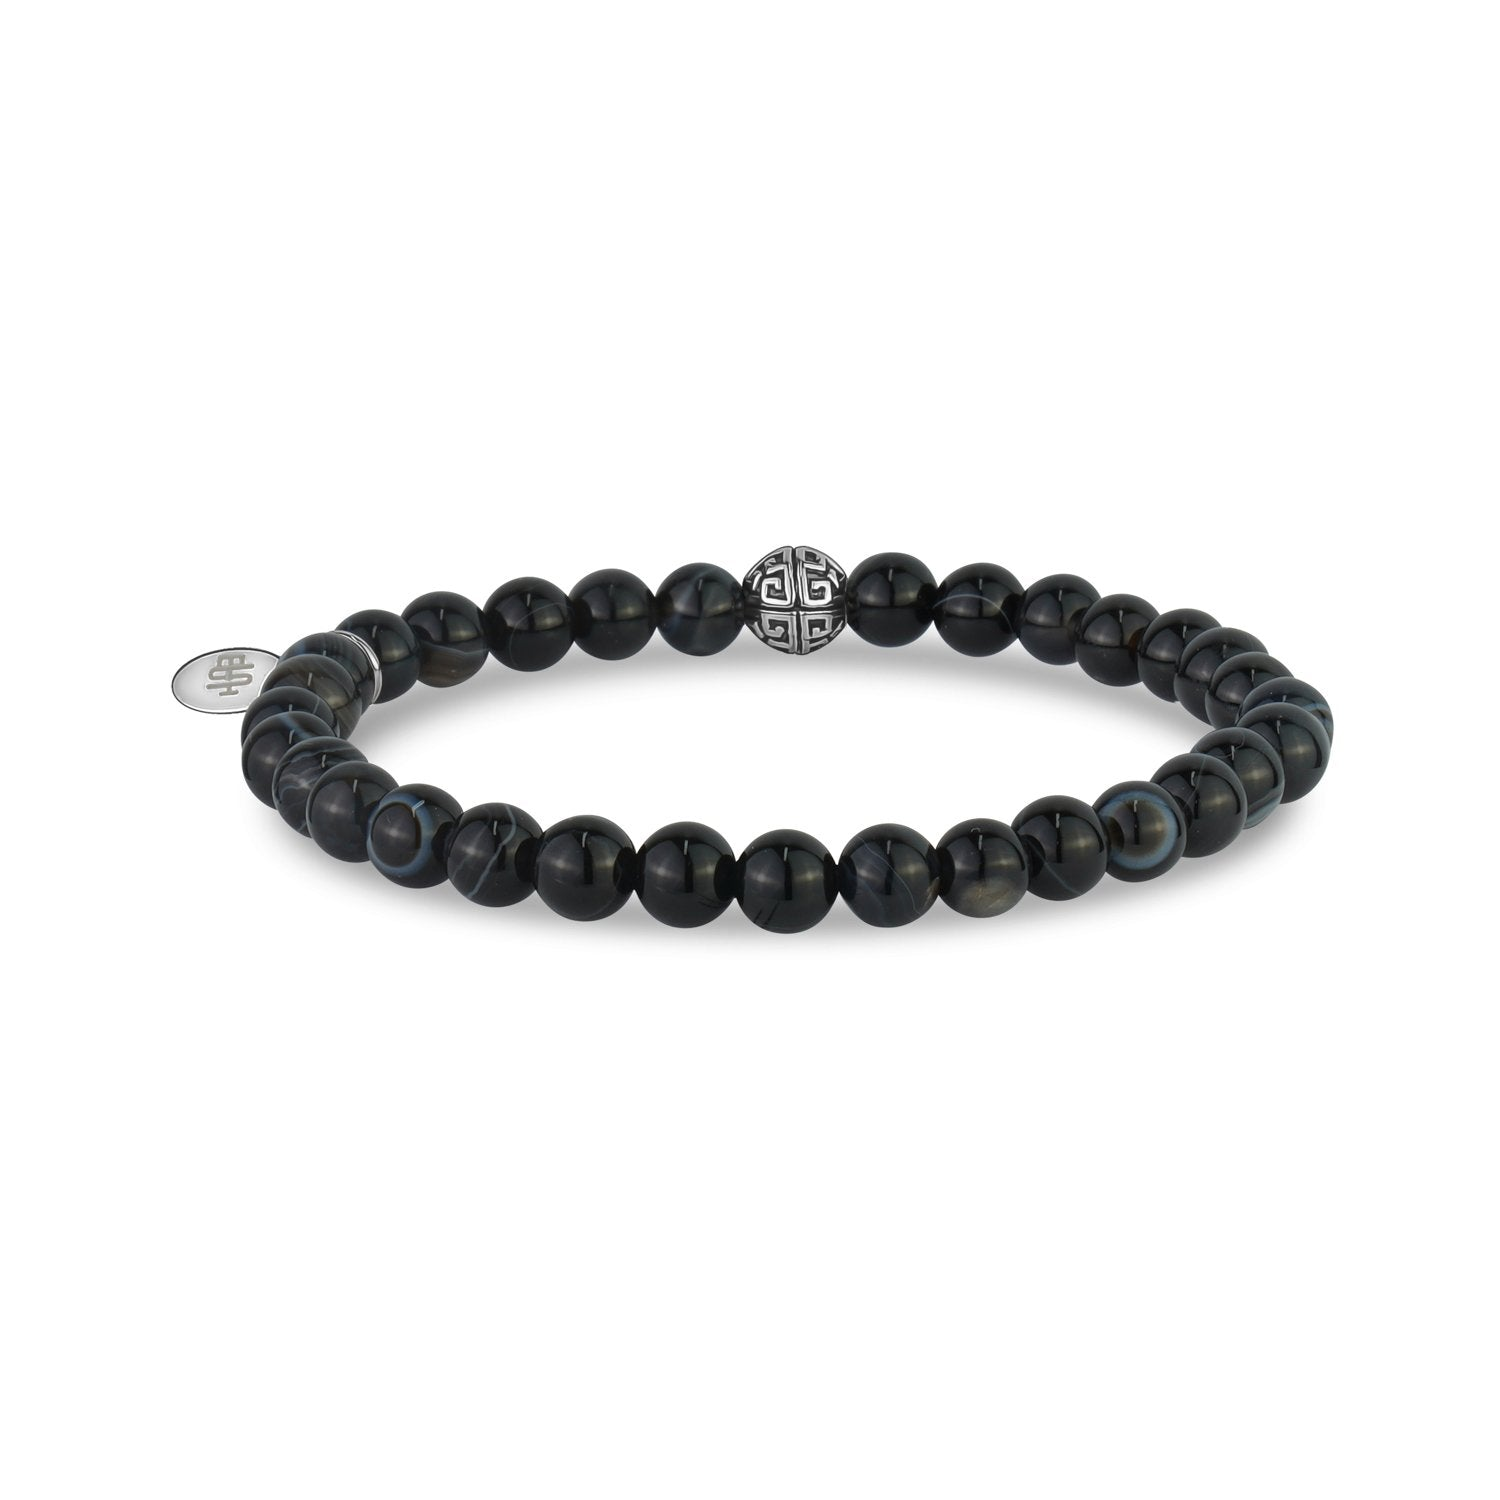 Unisex Bead Bracelet - 6mm Black Line Agate Stretch Bead Bracelet